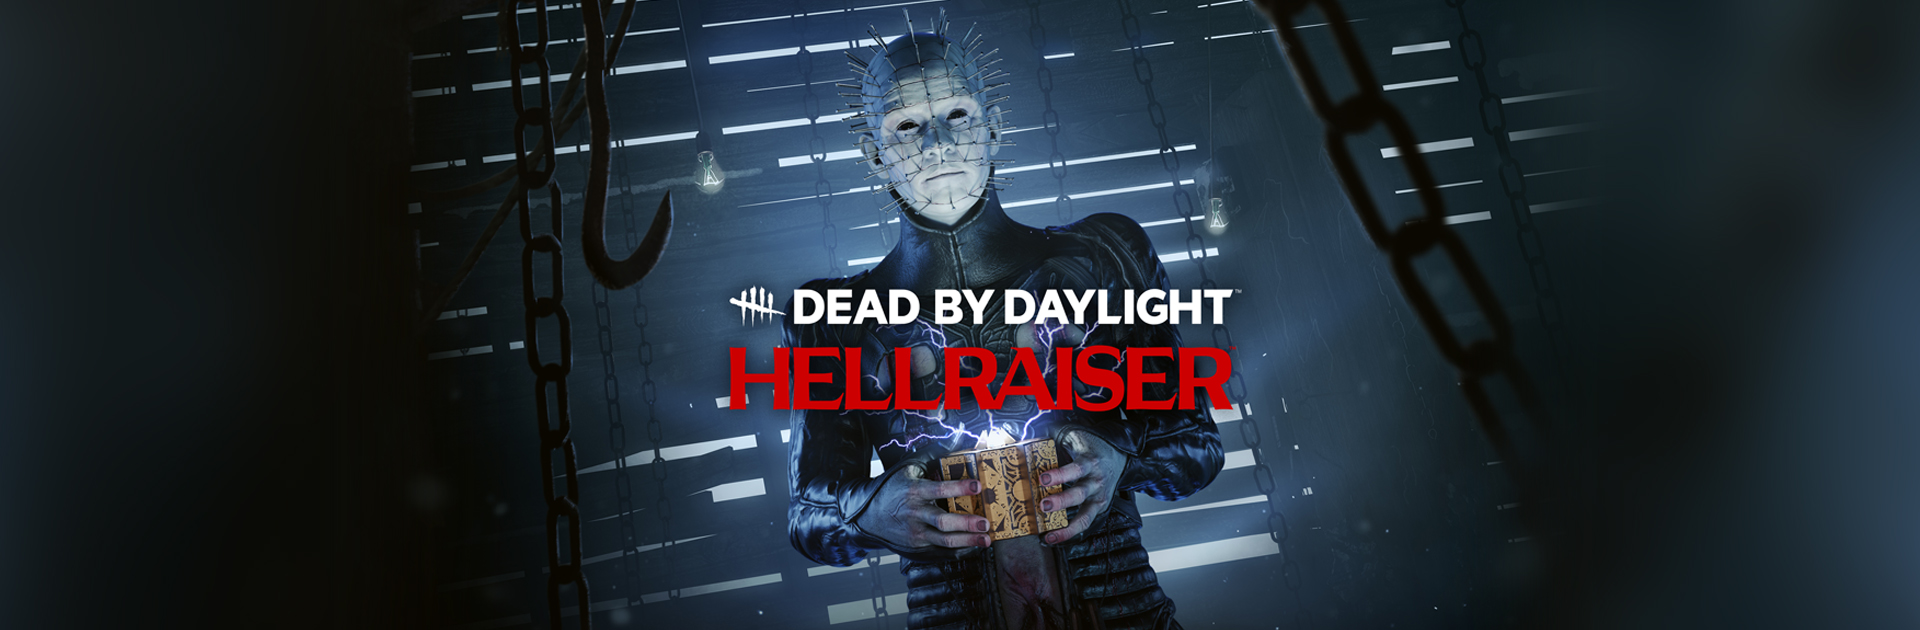 The Sweet, Sweet Suffering Commences as Pinhead™ Arrives in Dead by Daylight Today